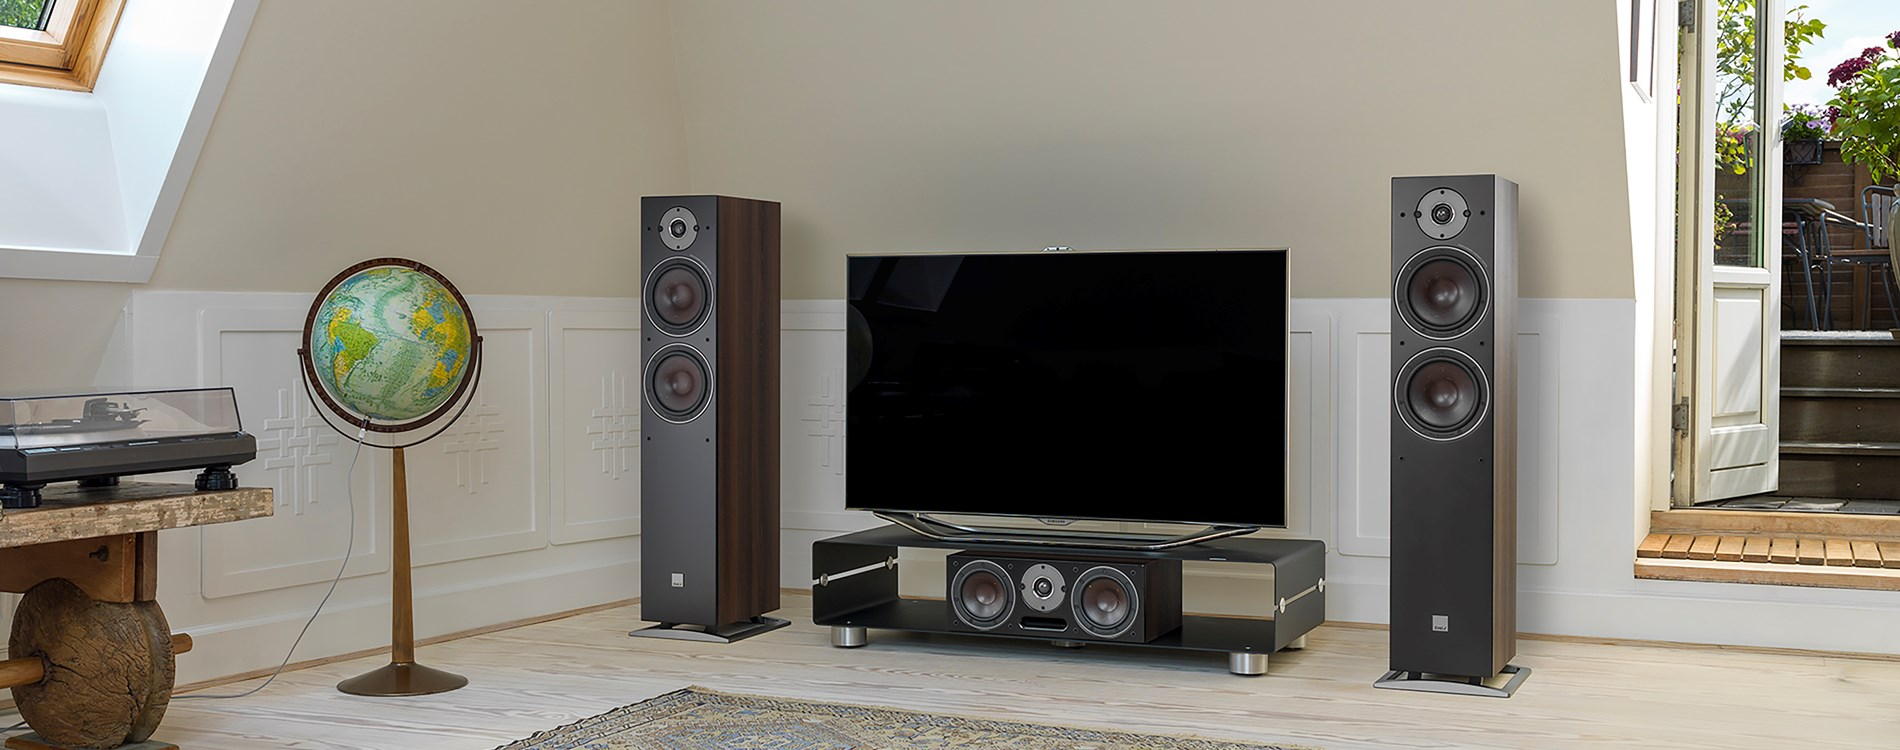 OBERON-7-Walnut-grille-TV-setup.jpg